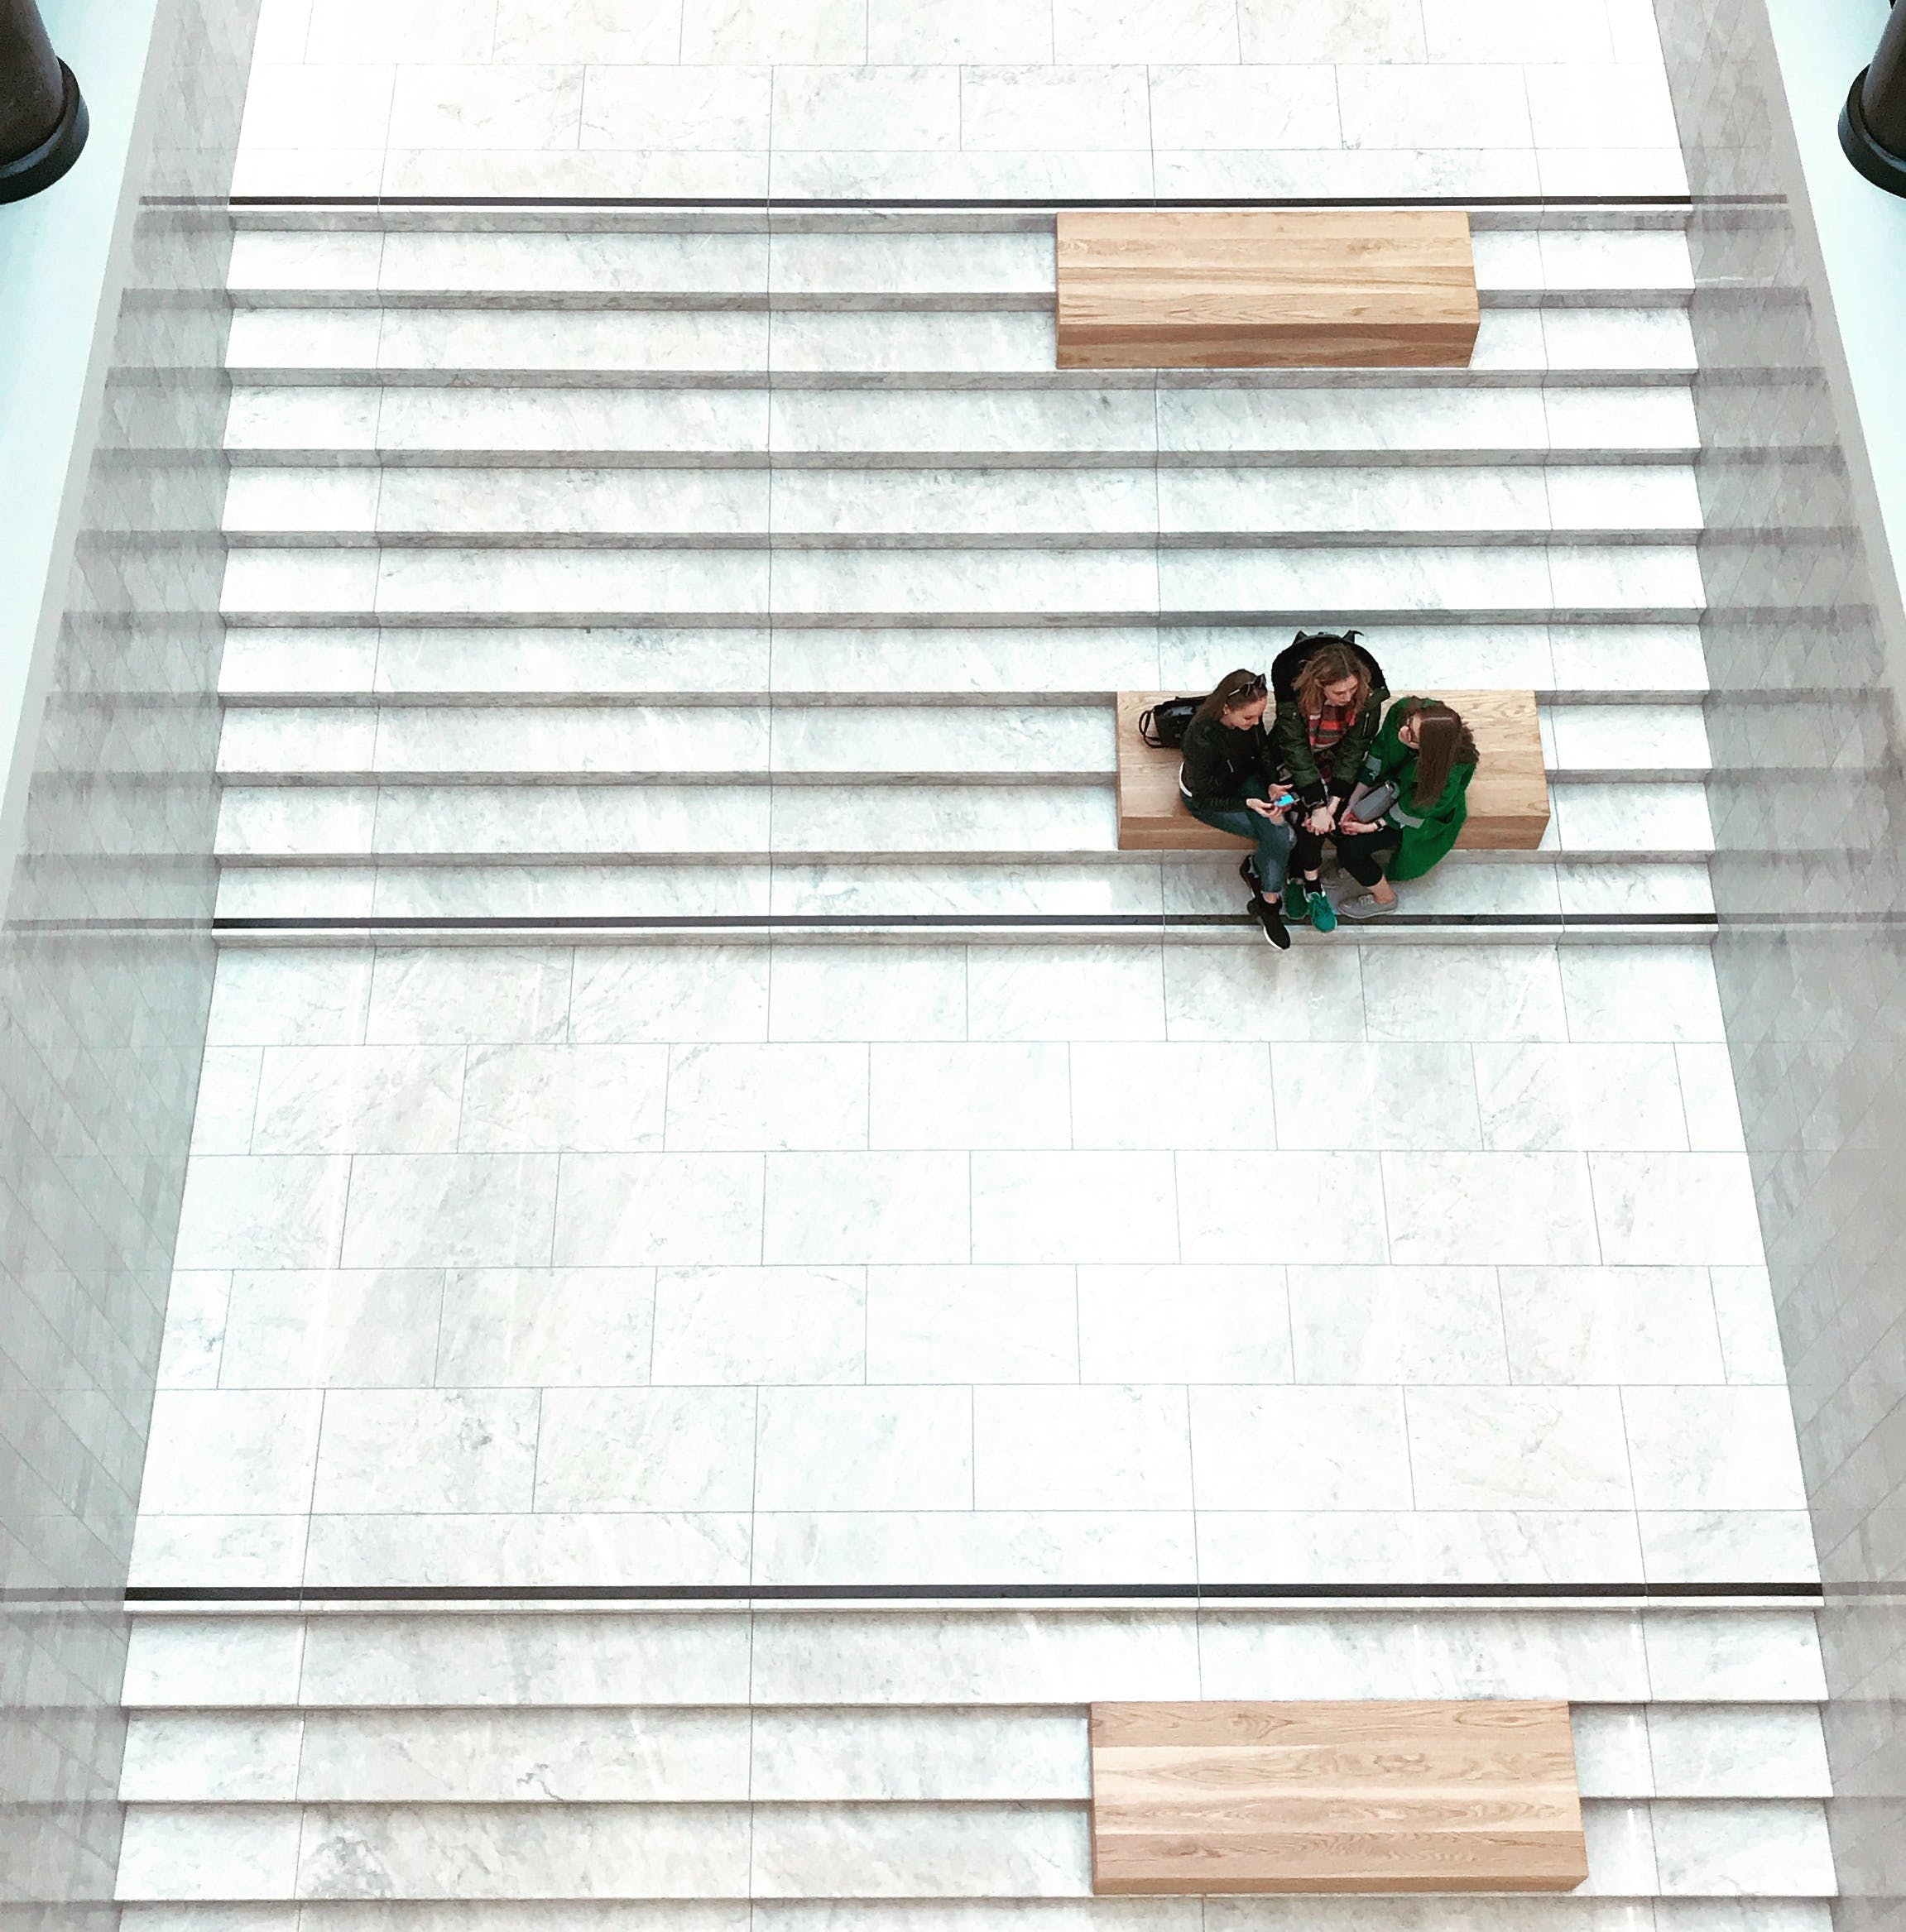 Aerial View of Women Sitting on Bench